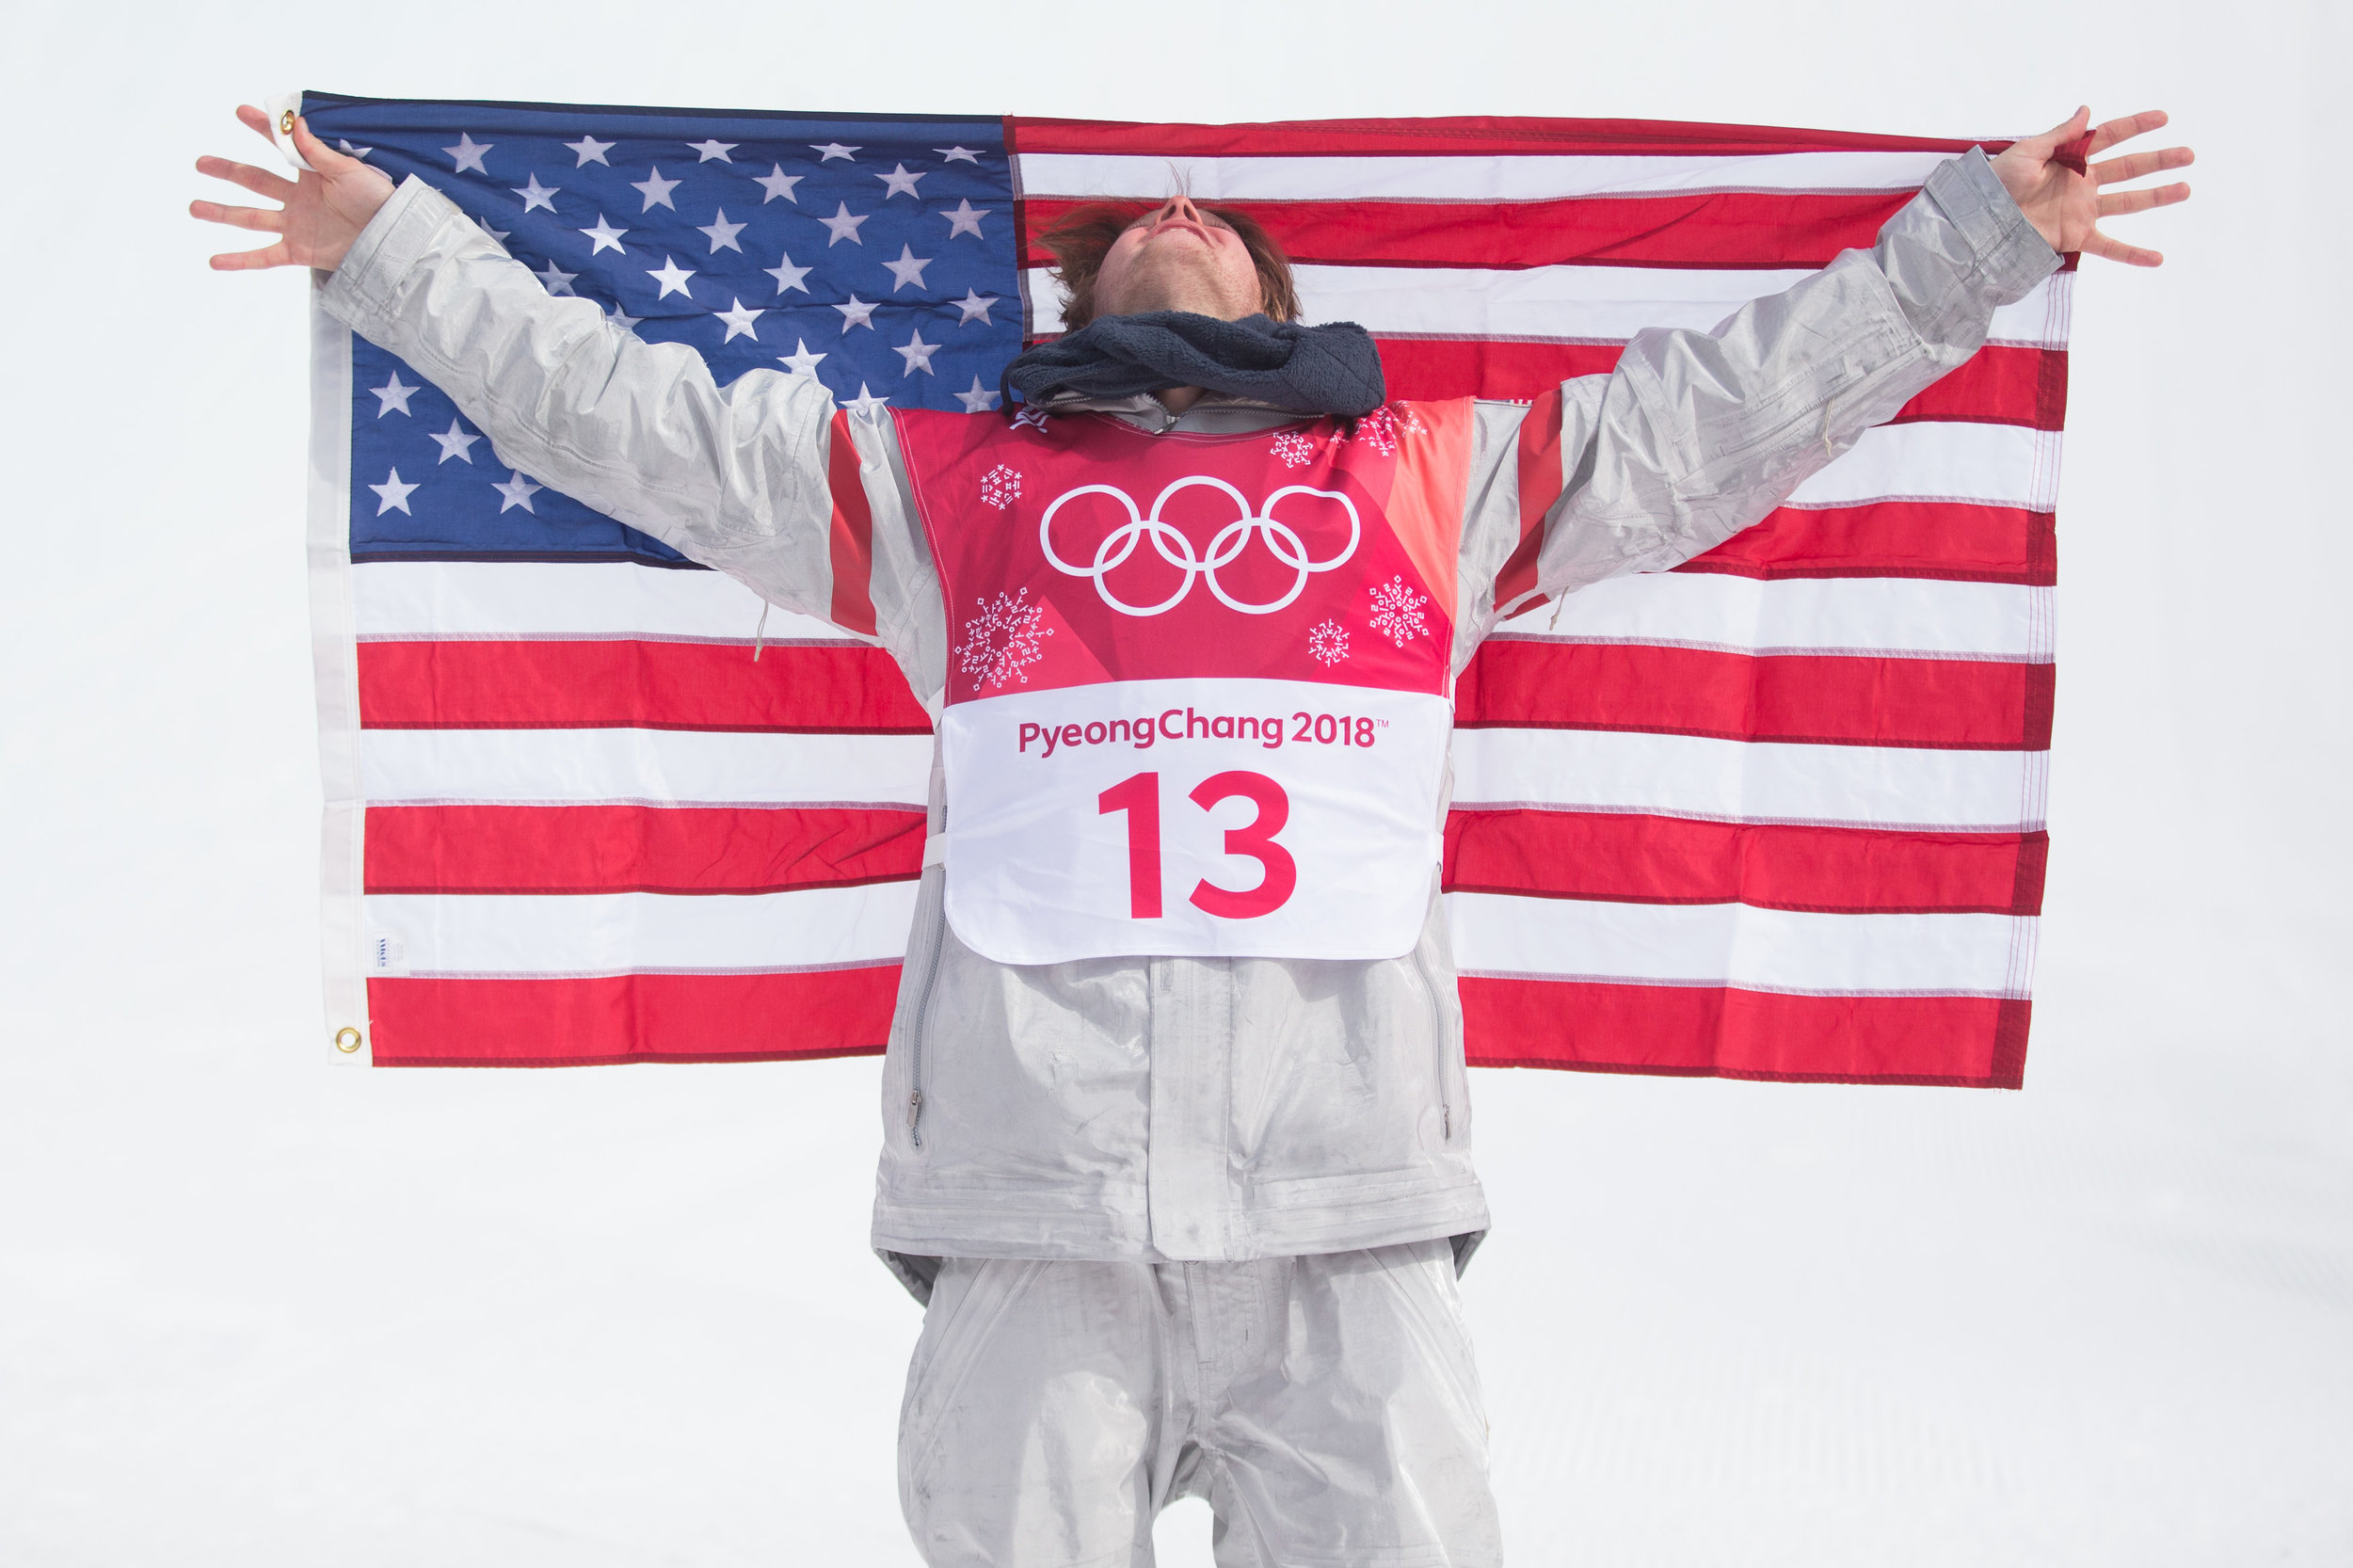 Kyle Mack of the United States celebrates his silver medal in the Men's Big Air Snowboard final in the 2018 Pyeongchang Olympics at the Alpensia Ski Jumping Centre in Pyeongchang, South Korea on February 24, 2018. Photo by Matthew Healey/UPI